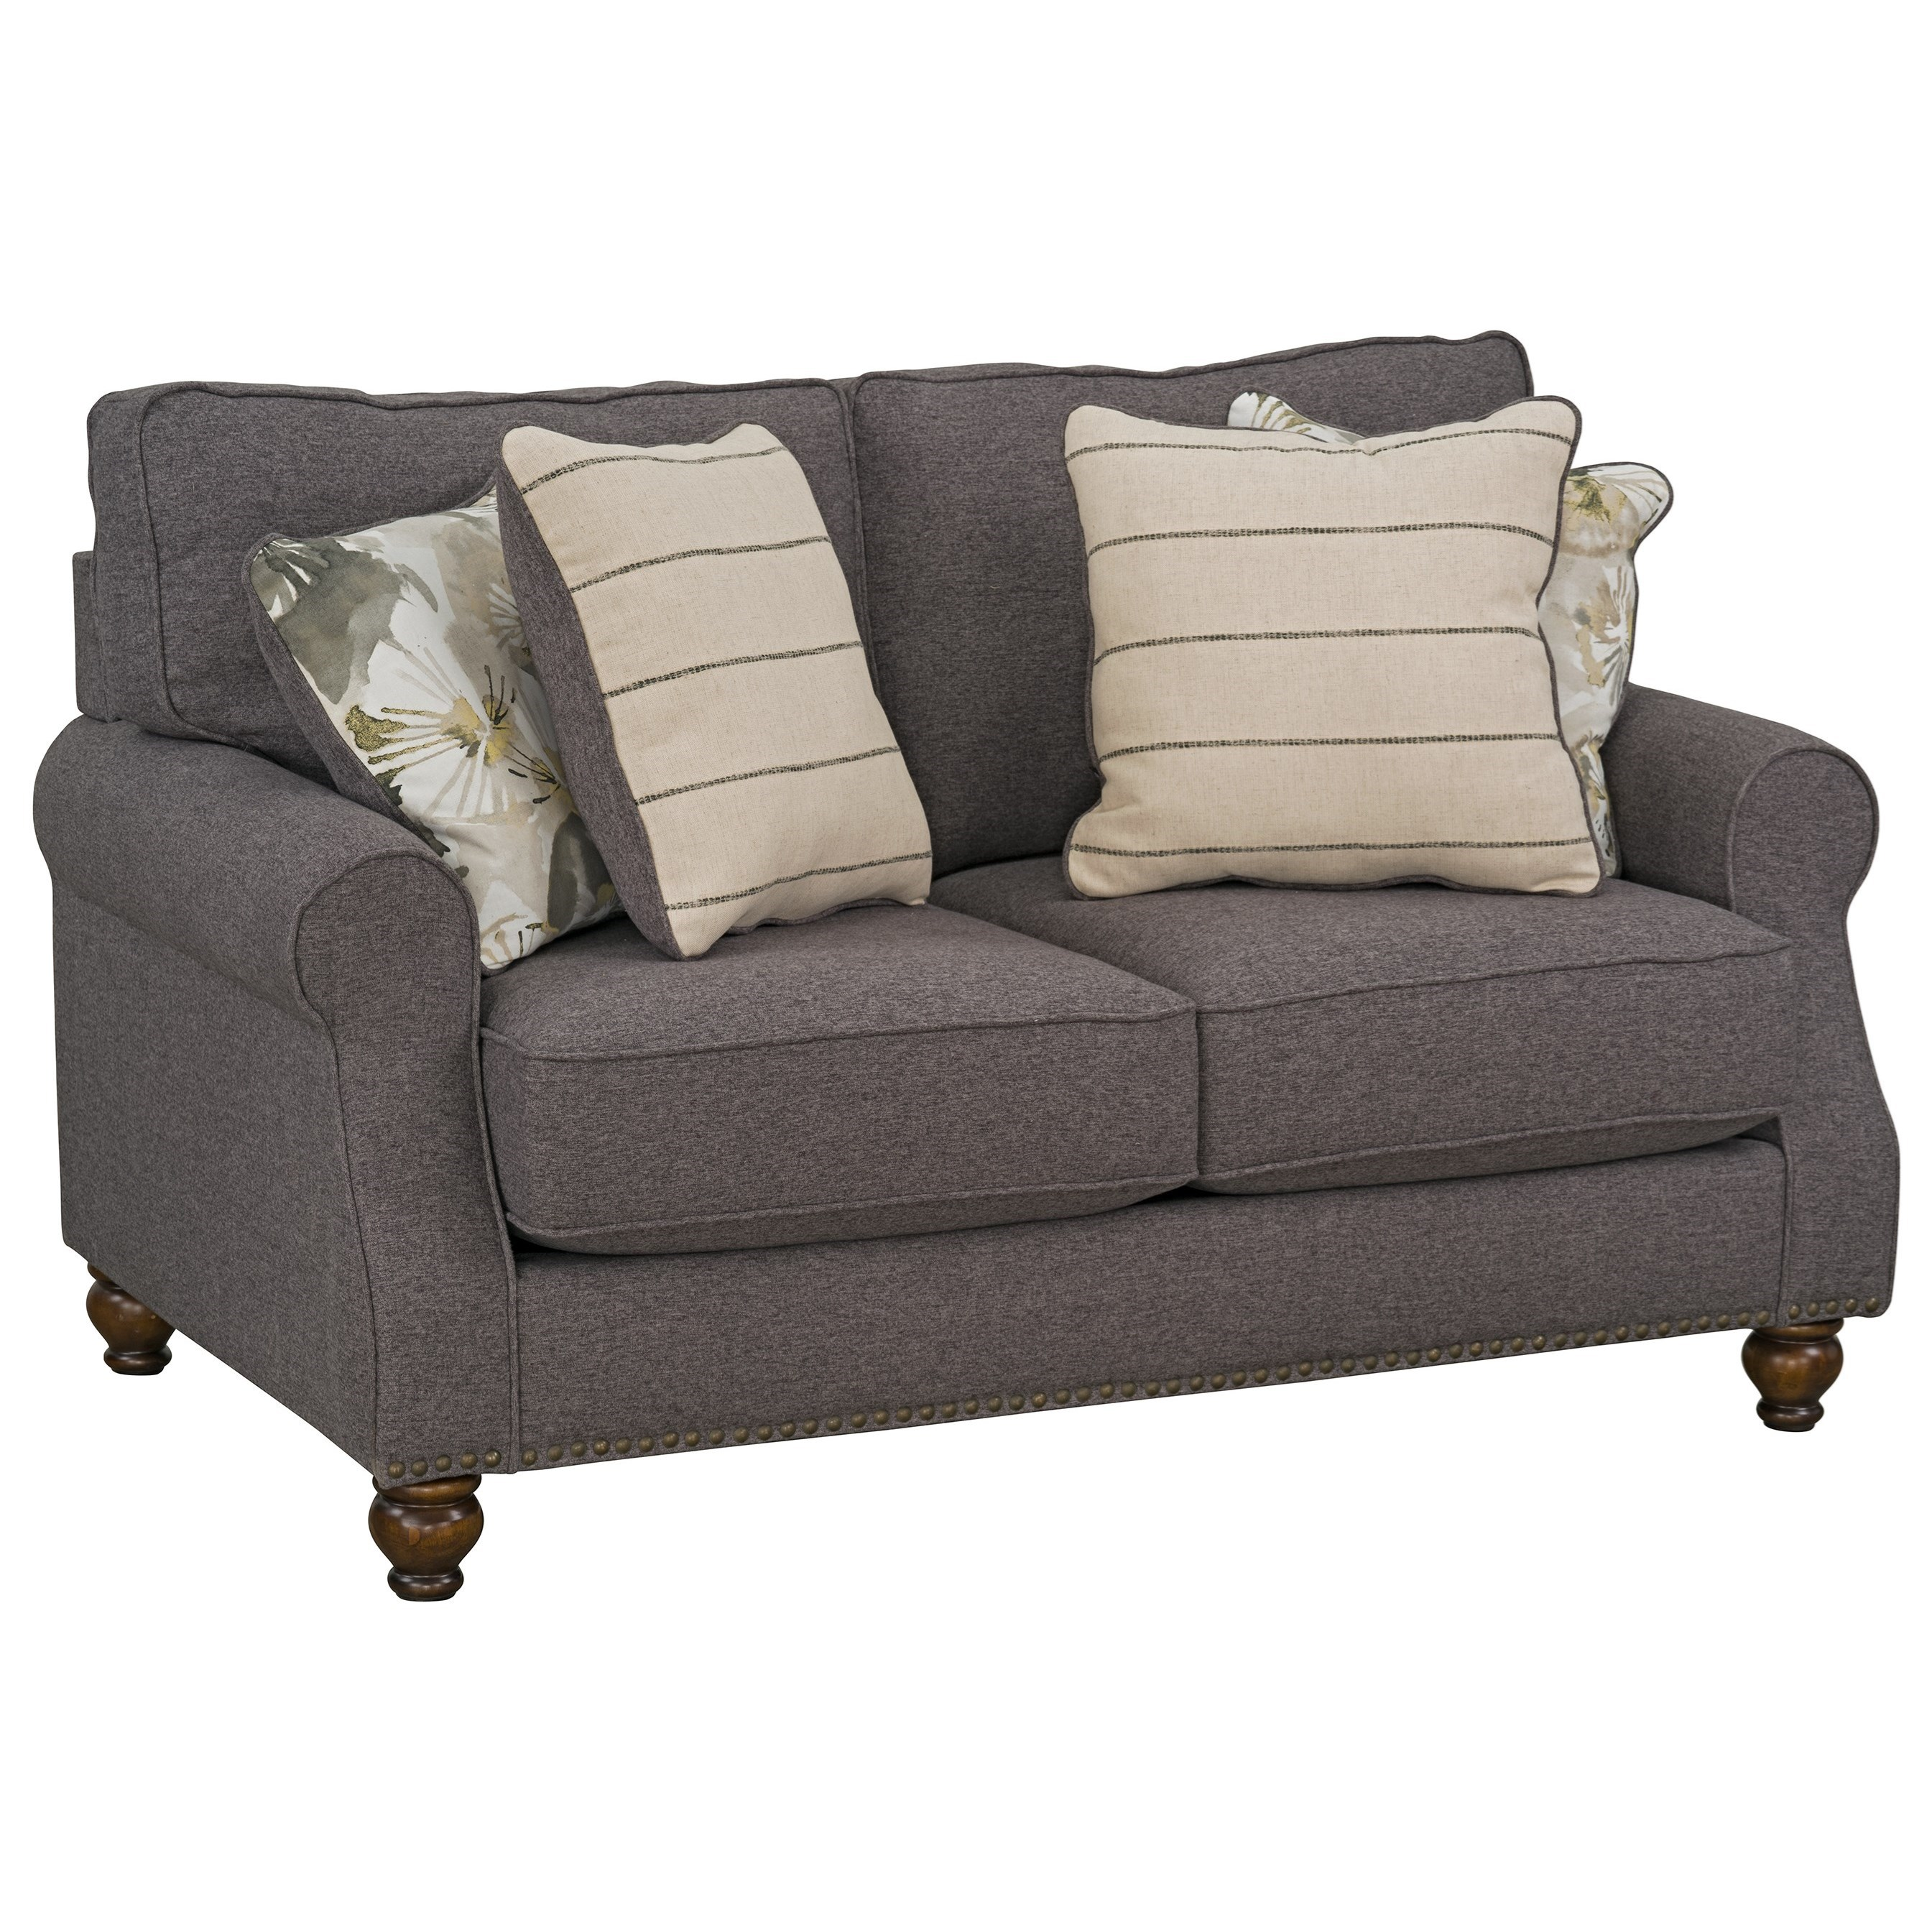 Angelina Love Seat by Standard Furniture at Beds N Stuff